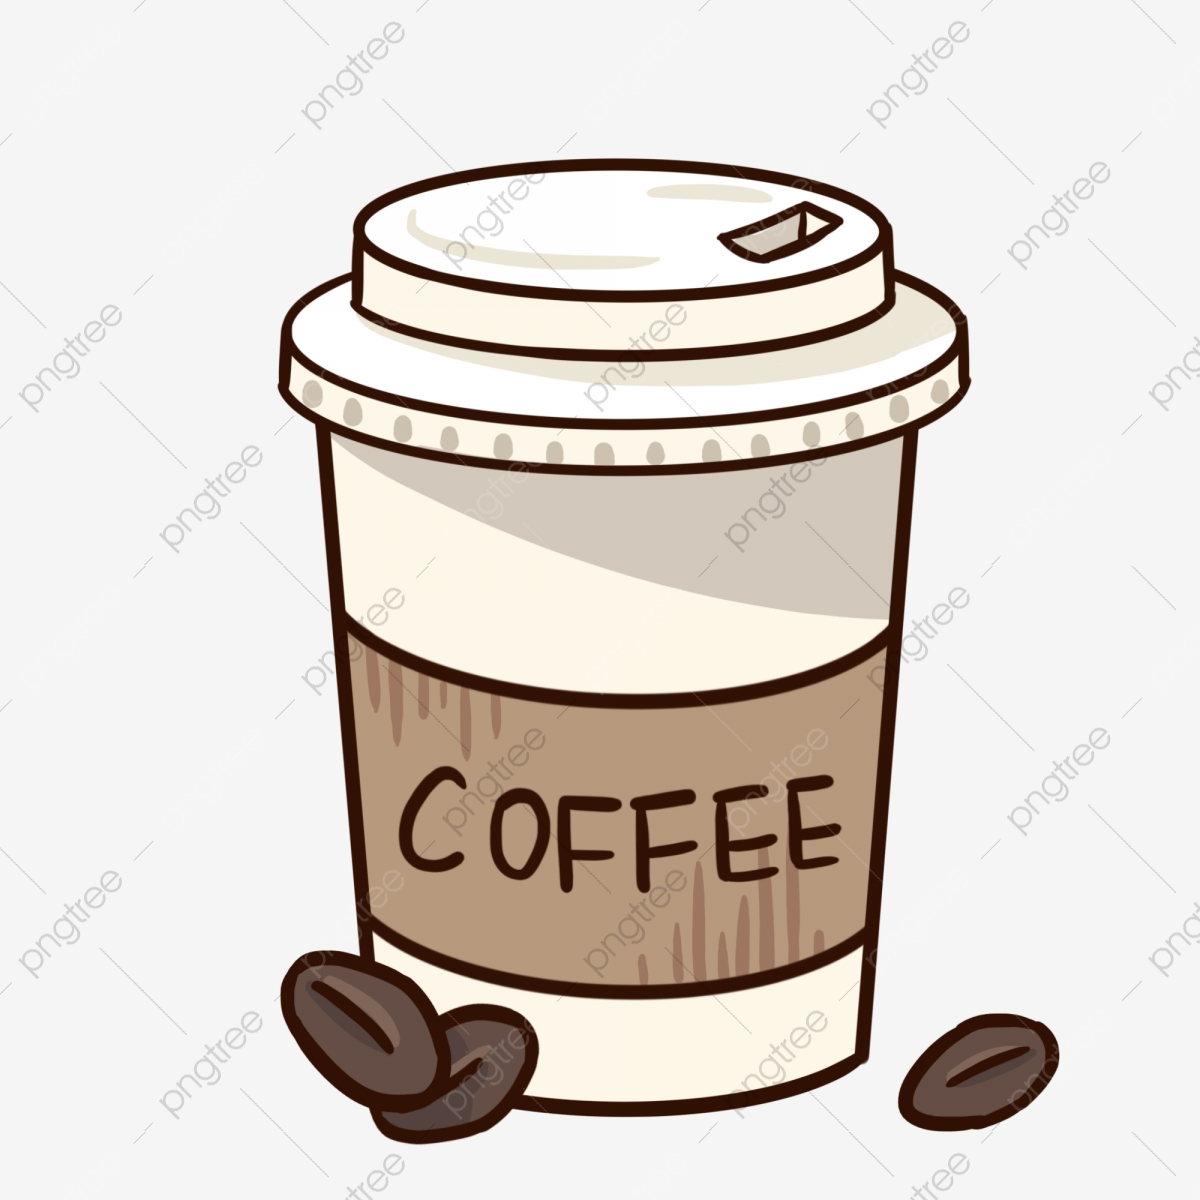 Beautiful Coffee Cup Illustration Coffee Mug Clipart Beautiful Coffee Cup Black Coffee Beans Png Transparent Clipart Image And Psd File For Free Download